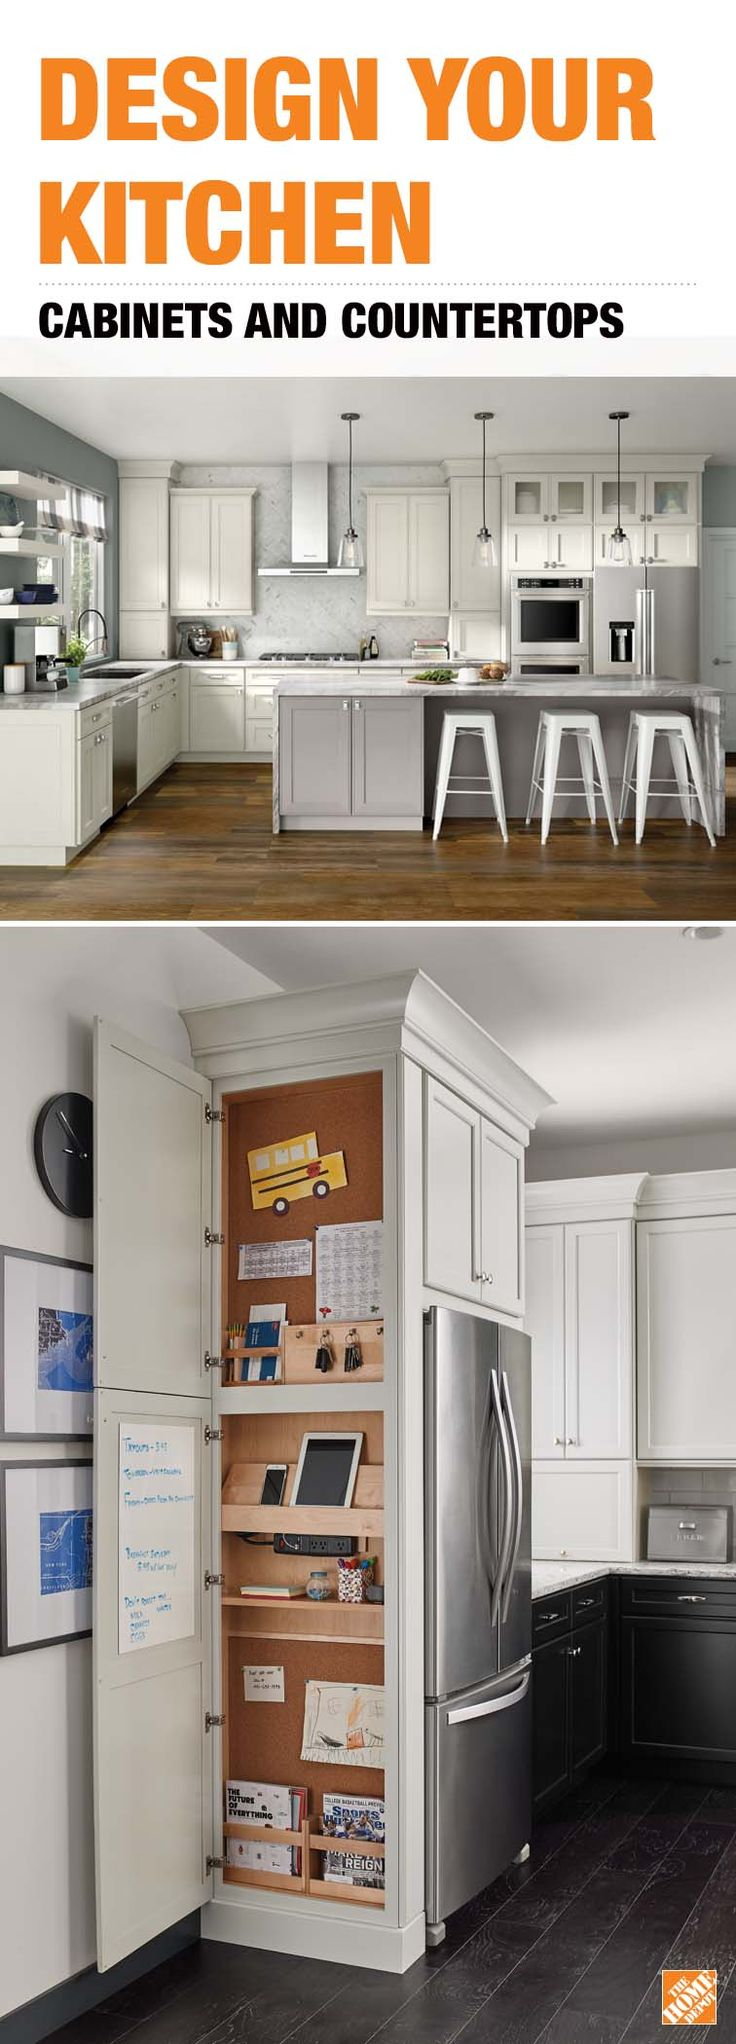 Kitchen make your kitchen dazzle with pertaining to kitchen design - Add Function To The Heart Of Your Home By Customizing Your Ultimate Kitchen Custom Cabinets